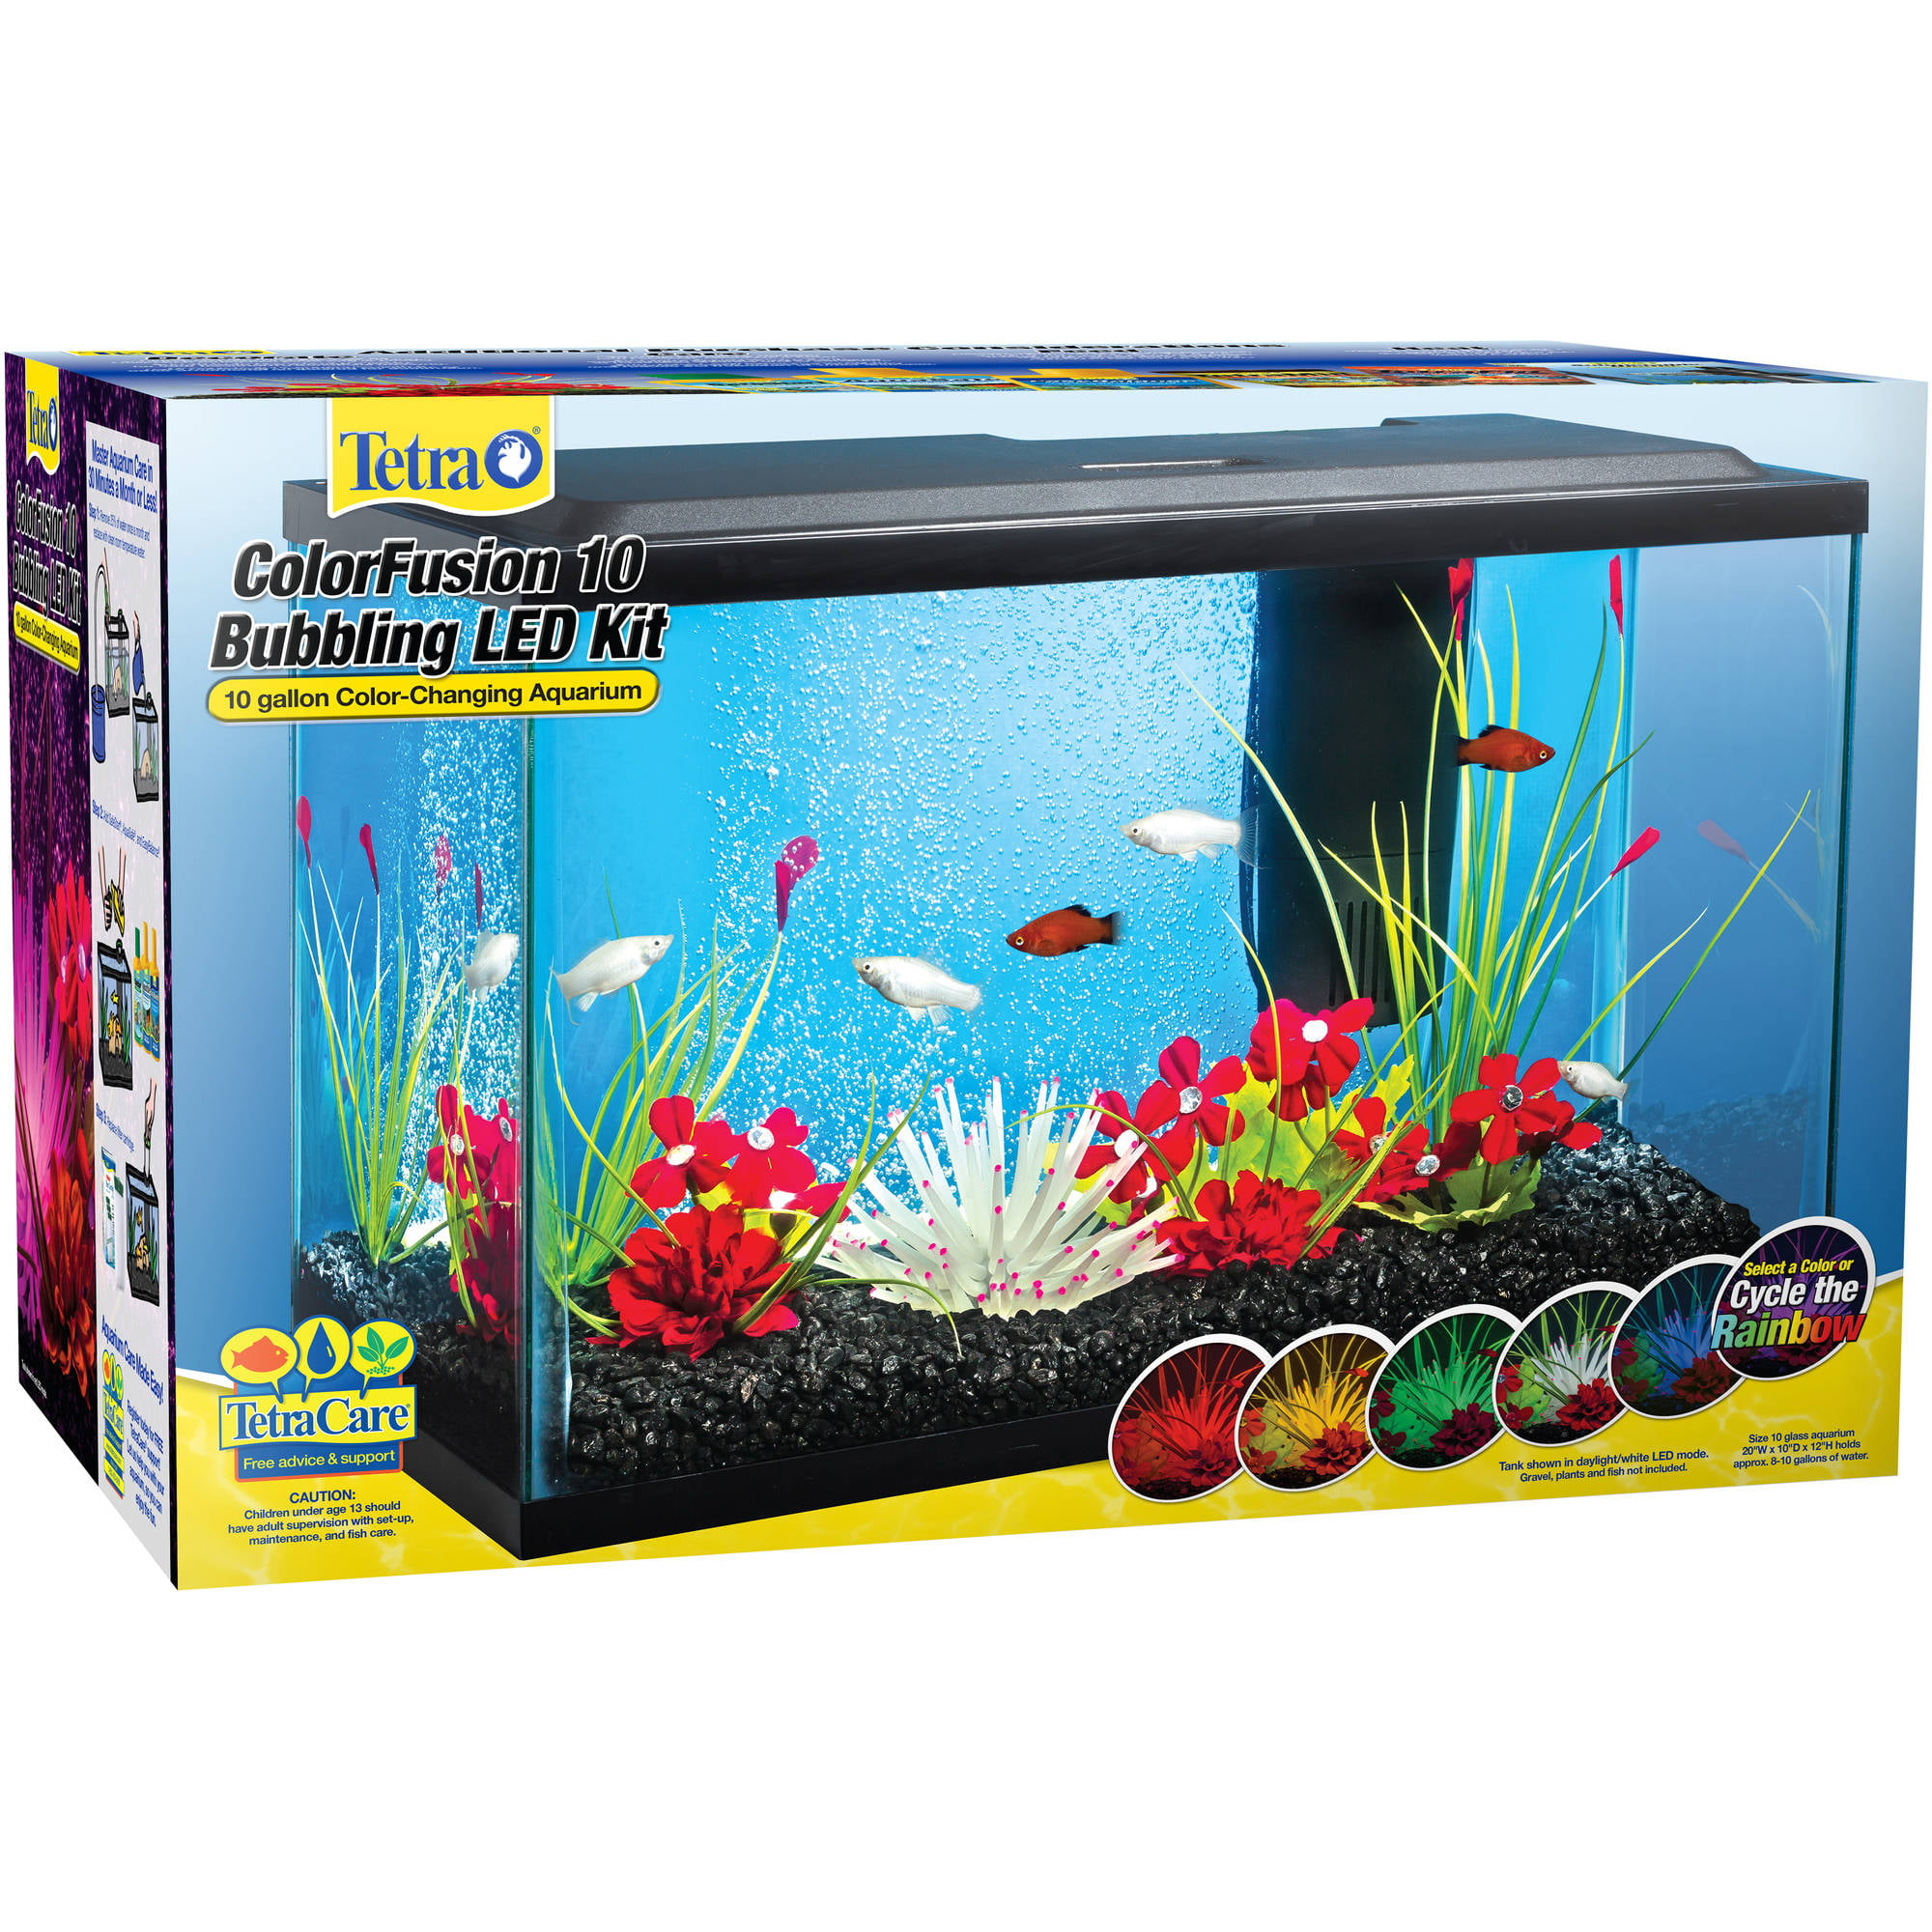 Tetra aquarium 10 gallon tank fish kit led light colors for 10 gallon fish tanks